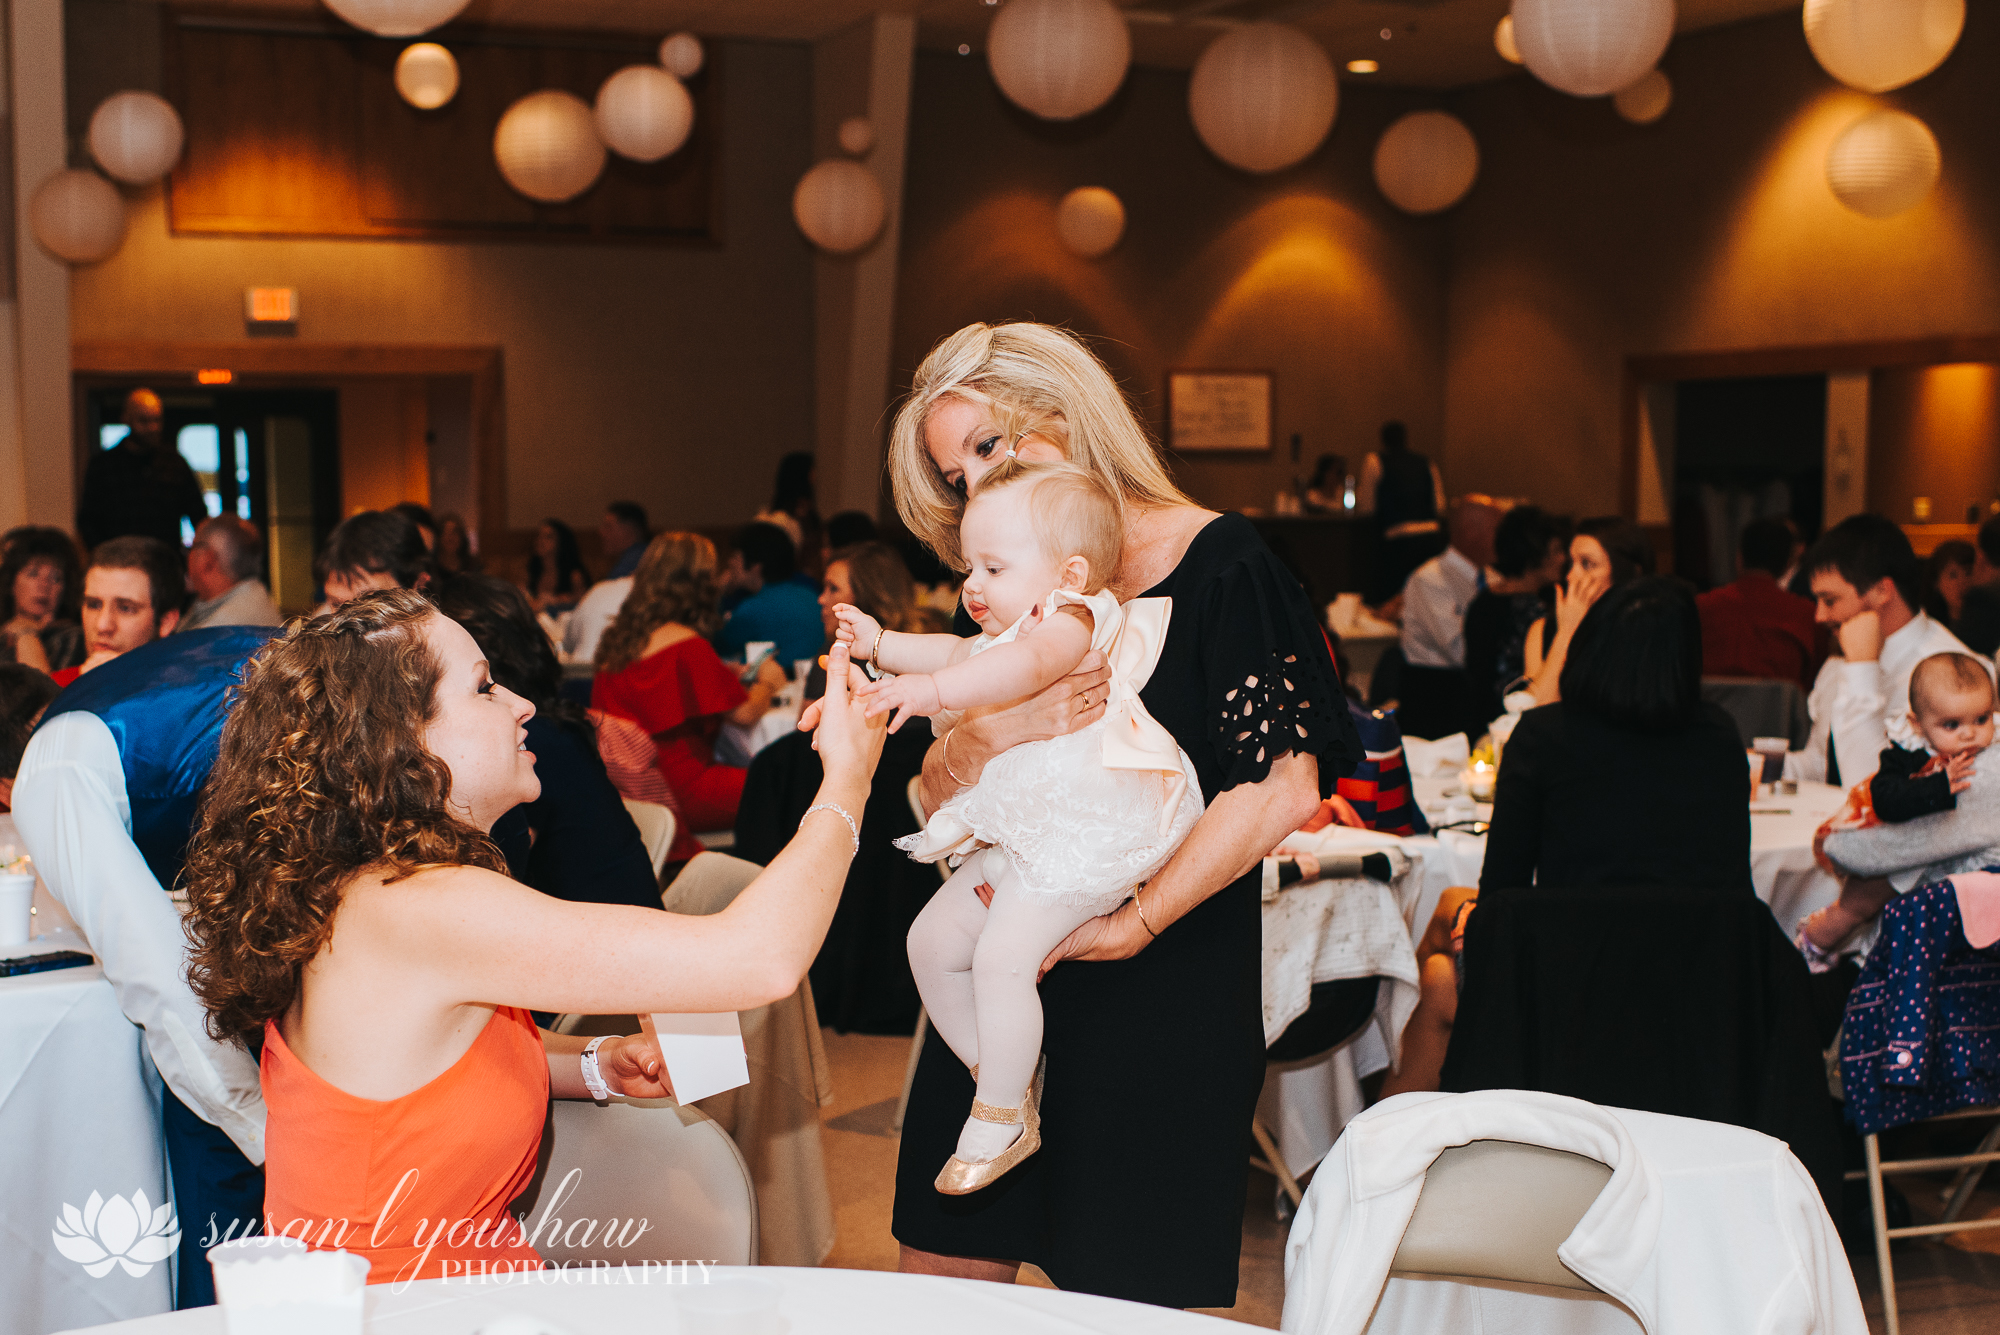 BLOG Kylie and corey Bennet 10-13-2018 SLY Photography LLC-136.jpg